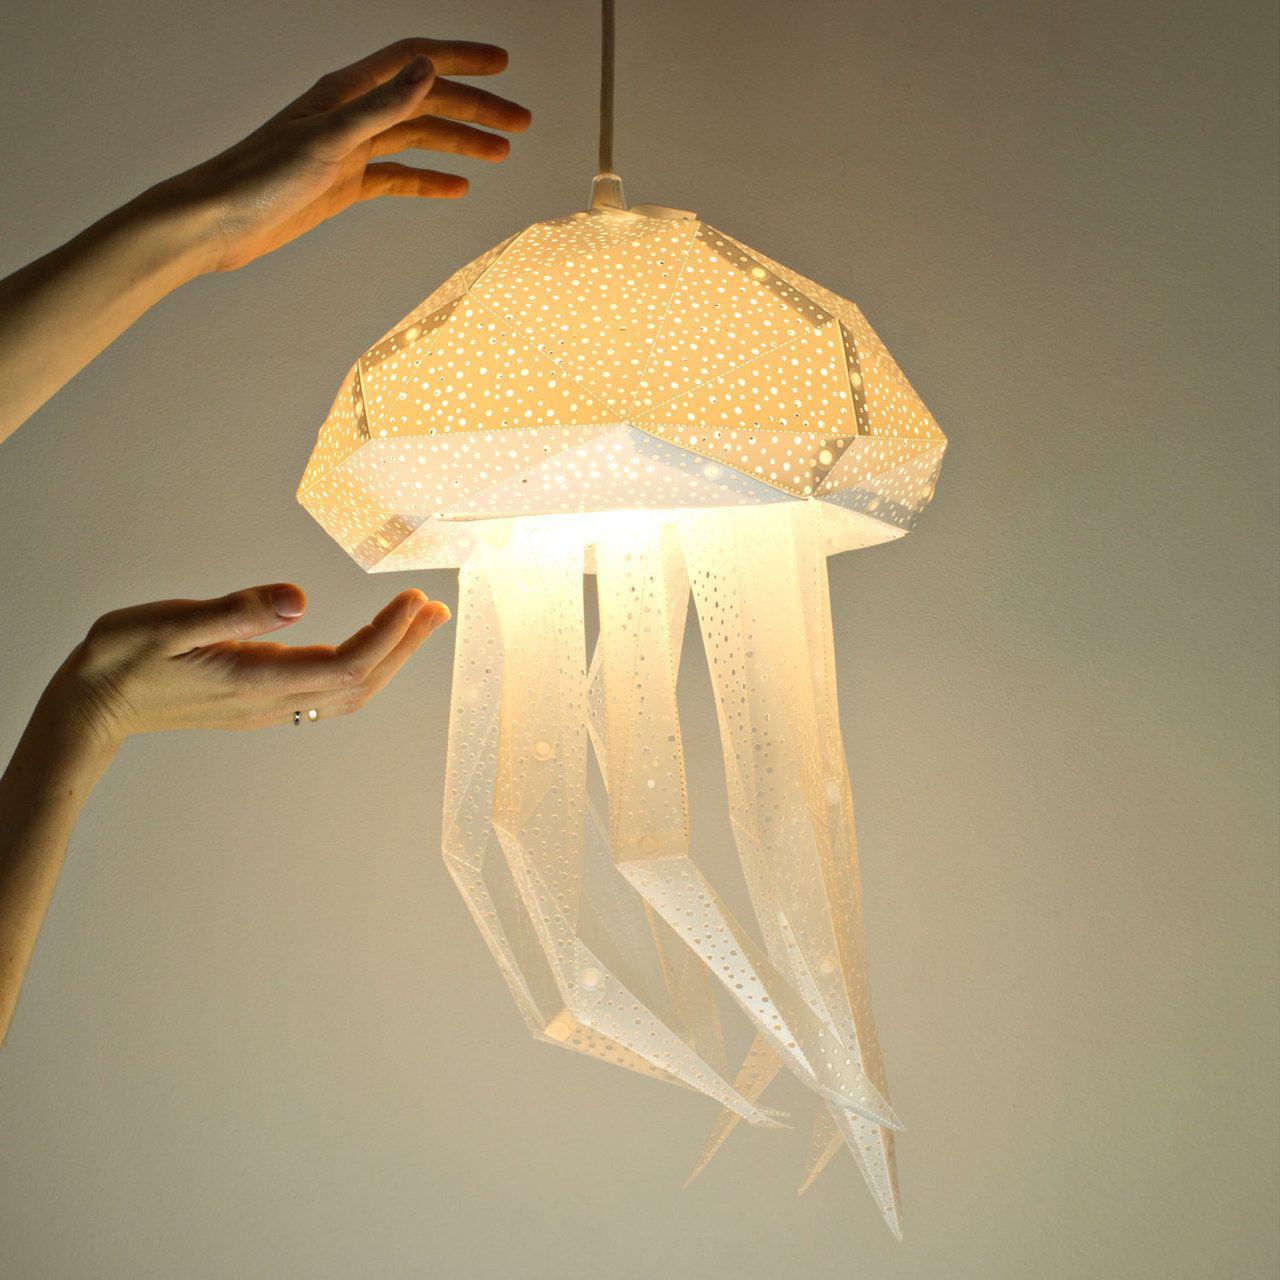 Paper Light Shades Diy Papercraft Light Shades Of Aquatic Life By Vasili Awesome